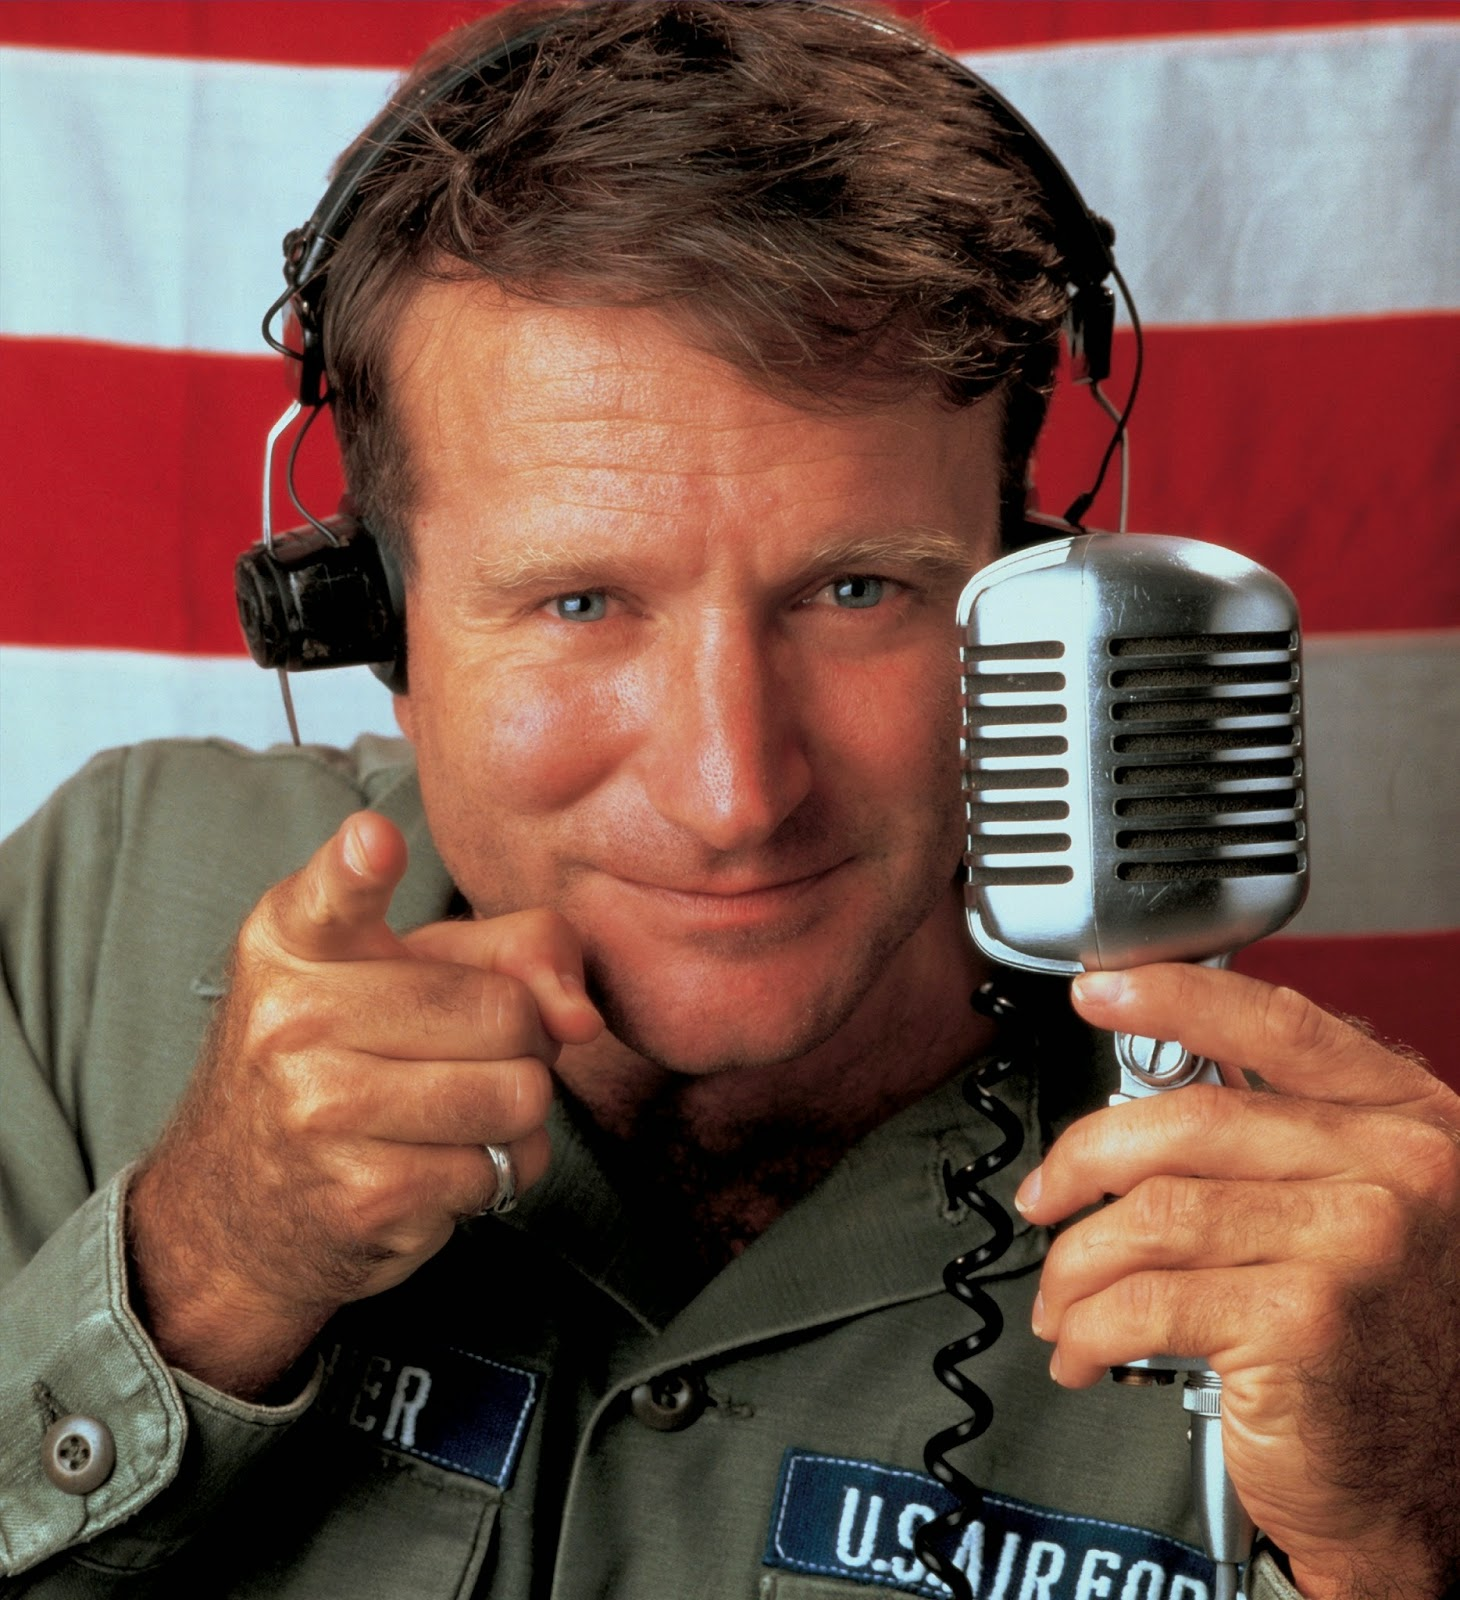 Robin Williams transferred the rights to use his image to a charity fund 03/31/2015 36